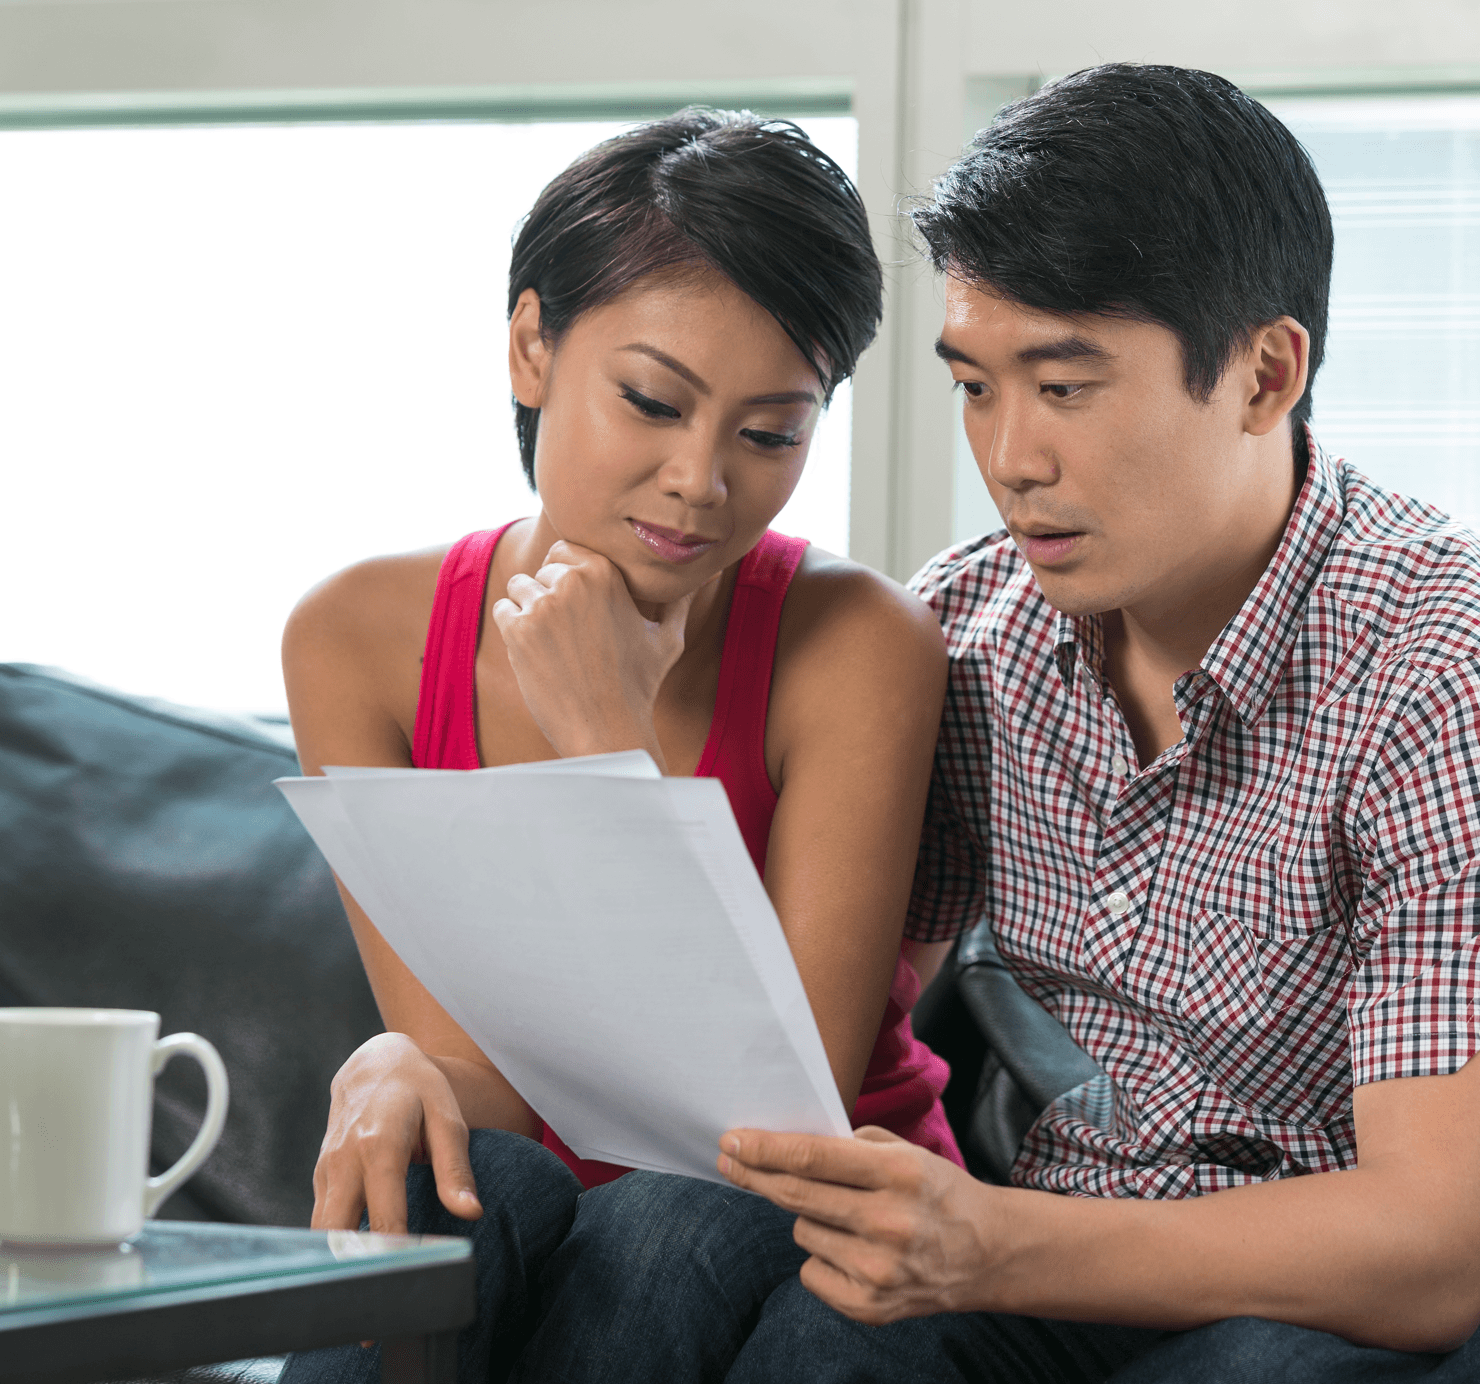 Mortgage SOS Understanding A Credit Report Couple Image